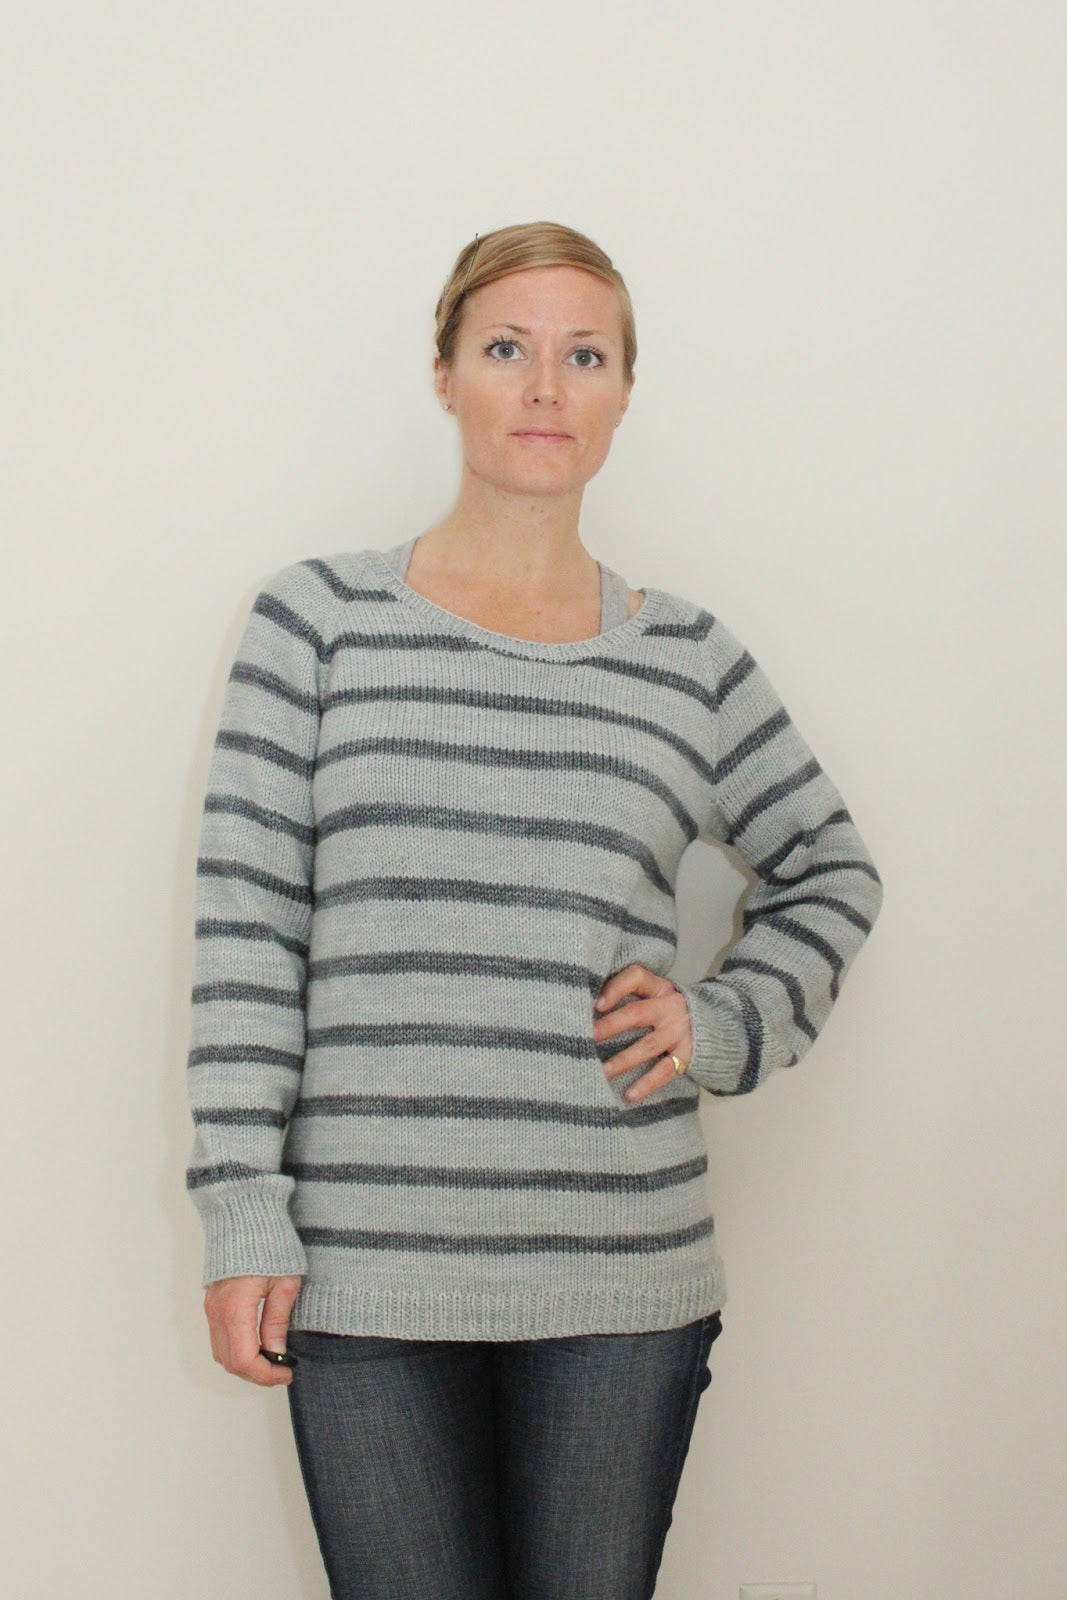 Off the Needles /// Striped Pullover on www.janerichmond.com